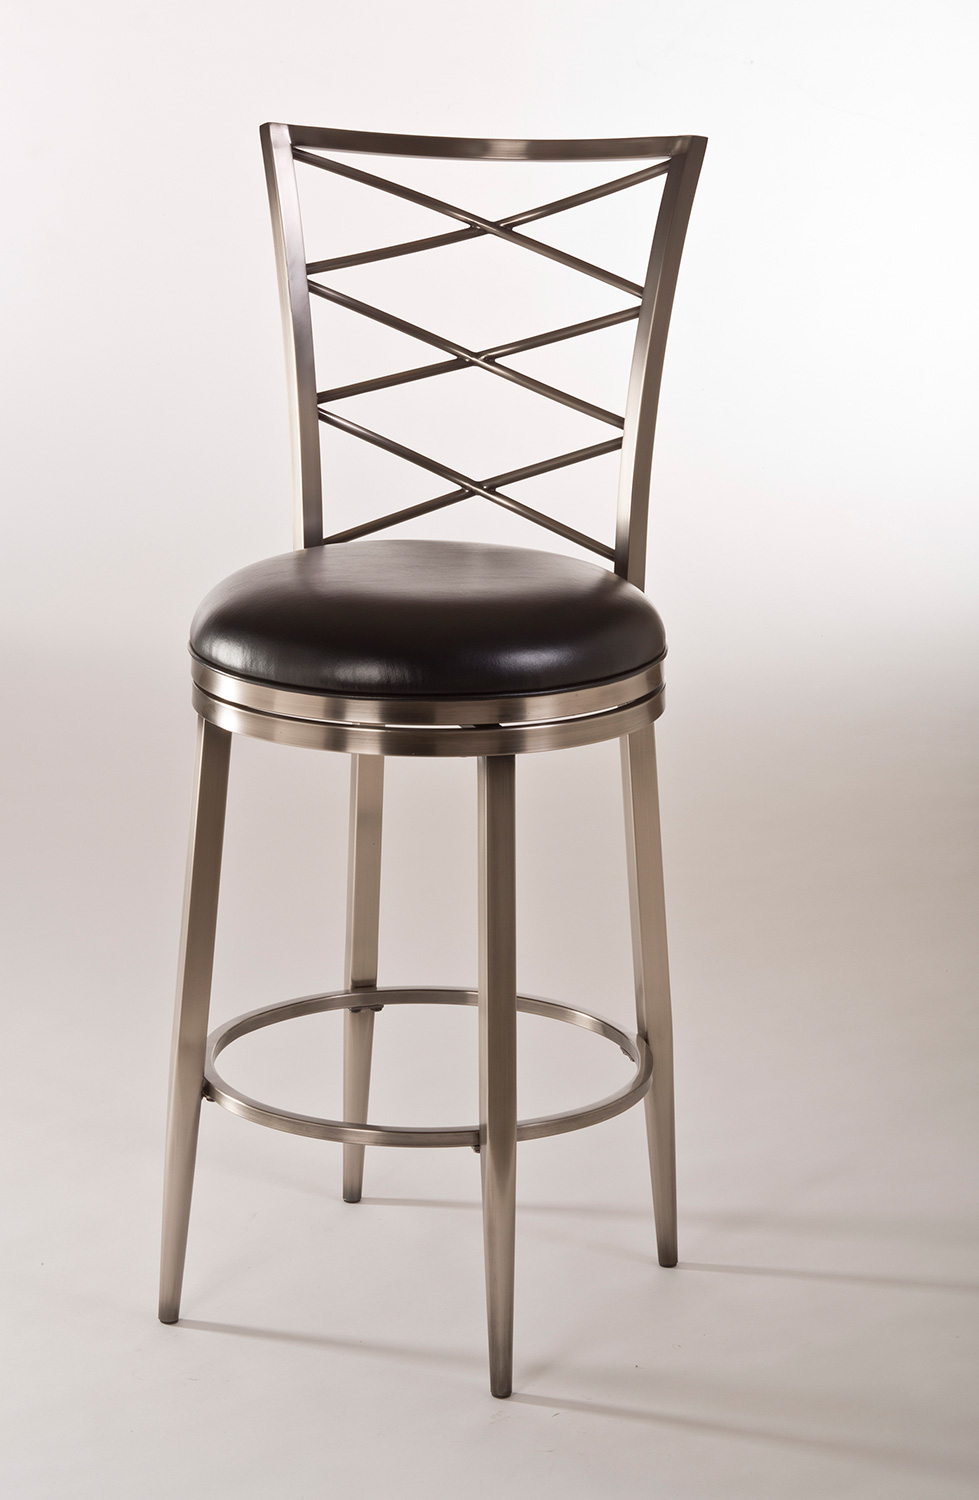 Hillsdale Harlow Swivel Counter Stool - Antique Pewter/Black Vinyl